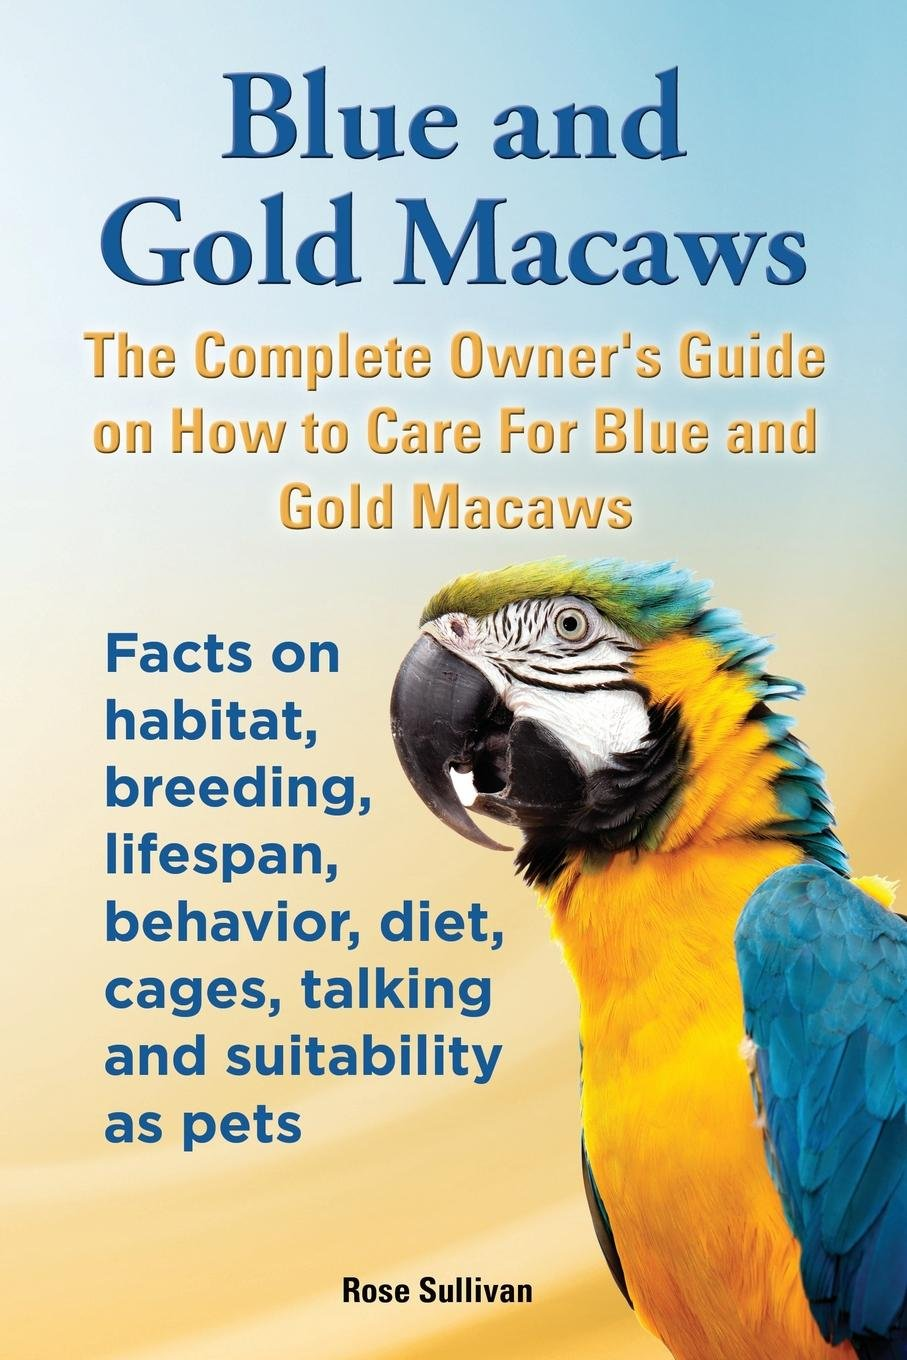 Blue and Gold Macaws, The Complete Owner's Guide on How to Care For Blue and Yellow Macaws, Facts on habitat, breeding, lifespan, behavior, diet, cages, talking and suitability as pets PDF